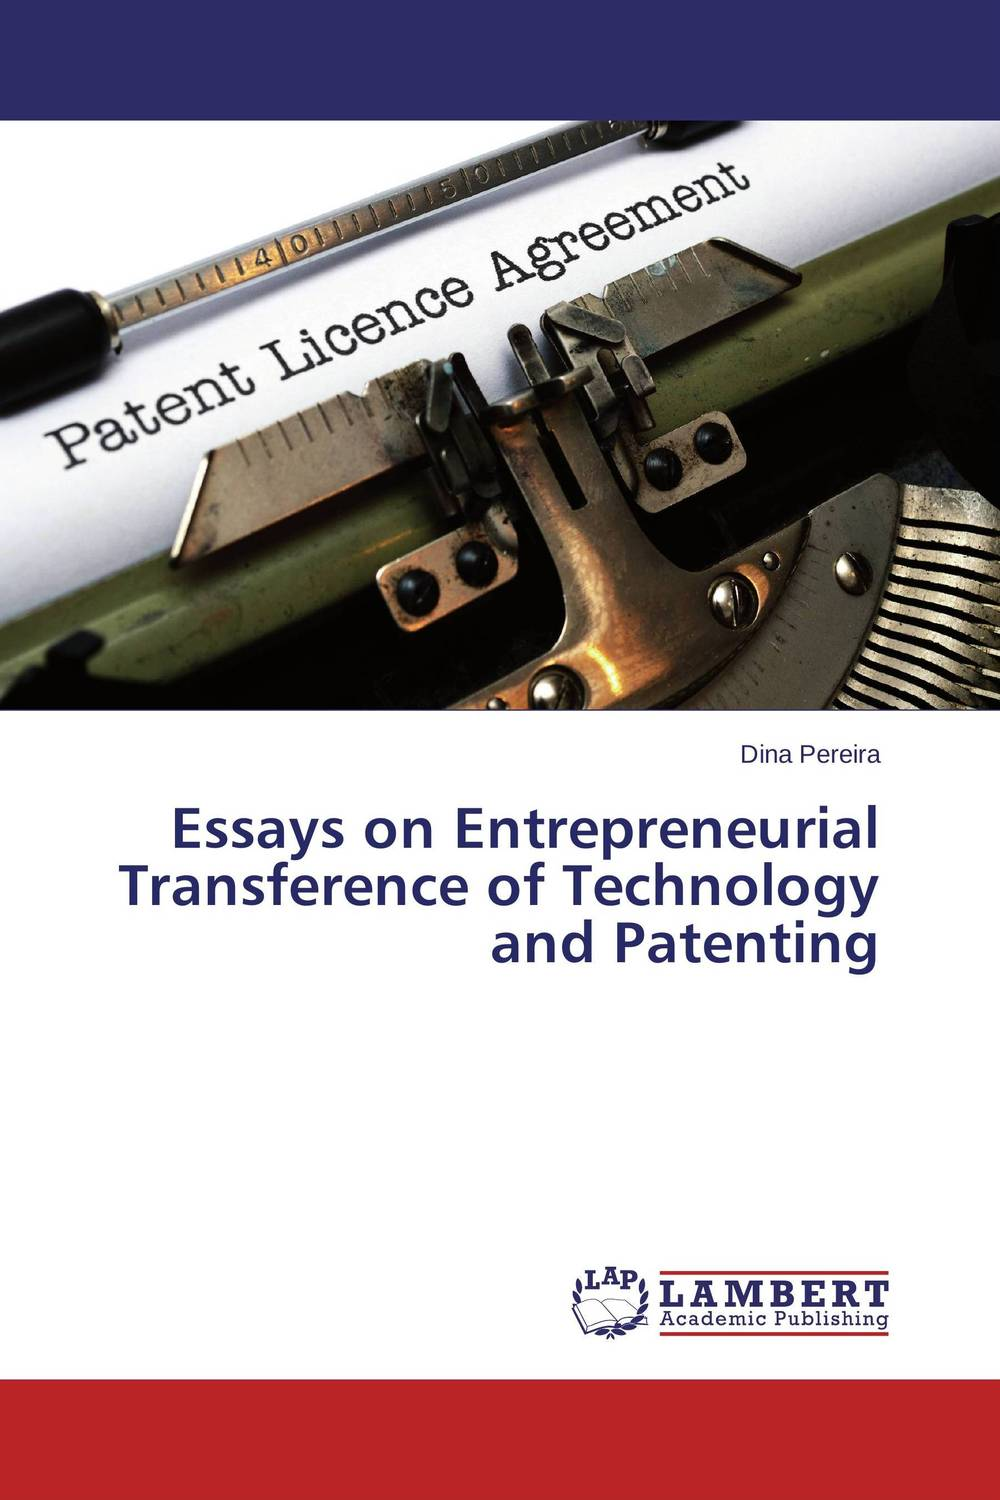 Essays on Entrepreneurial Transference of Technology and Patenting